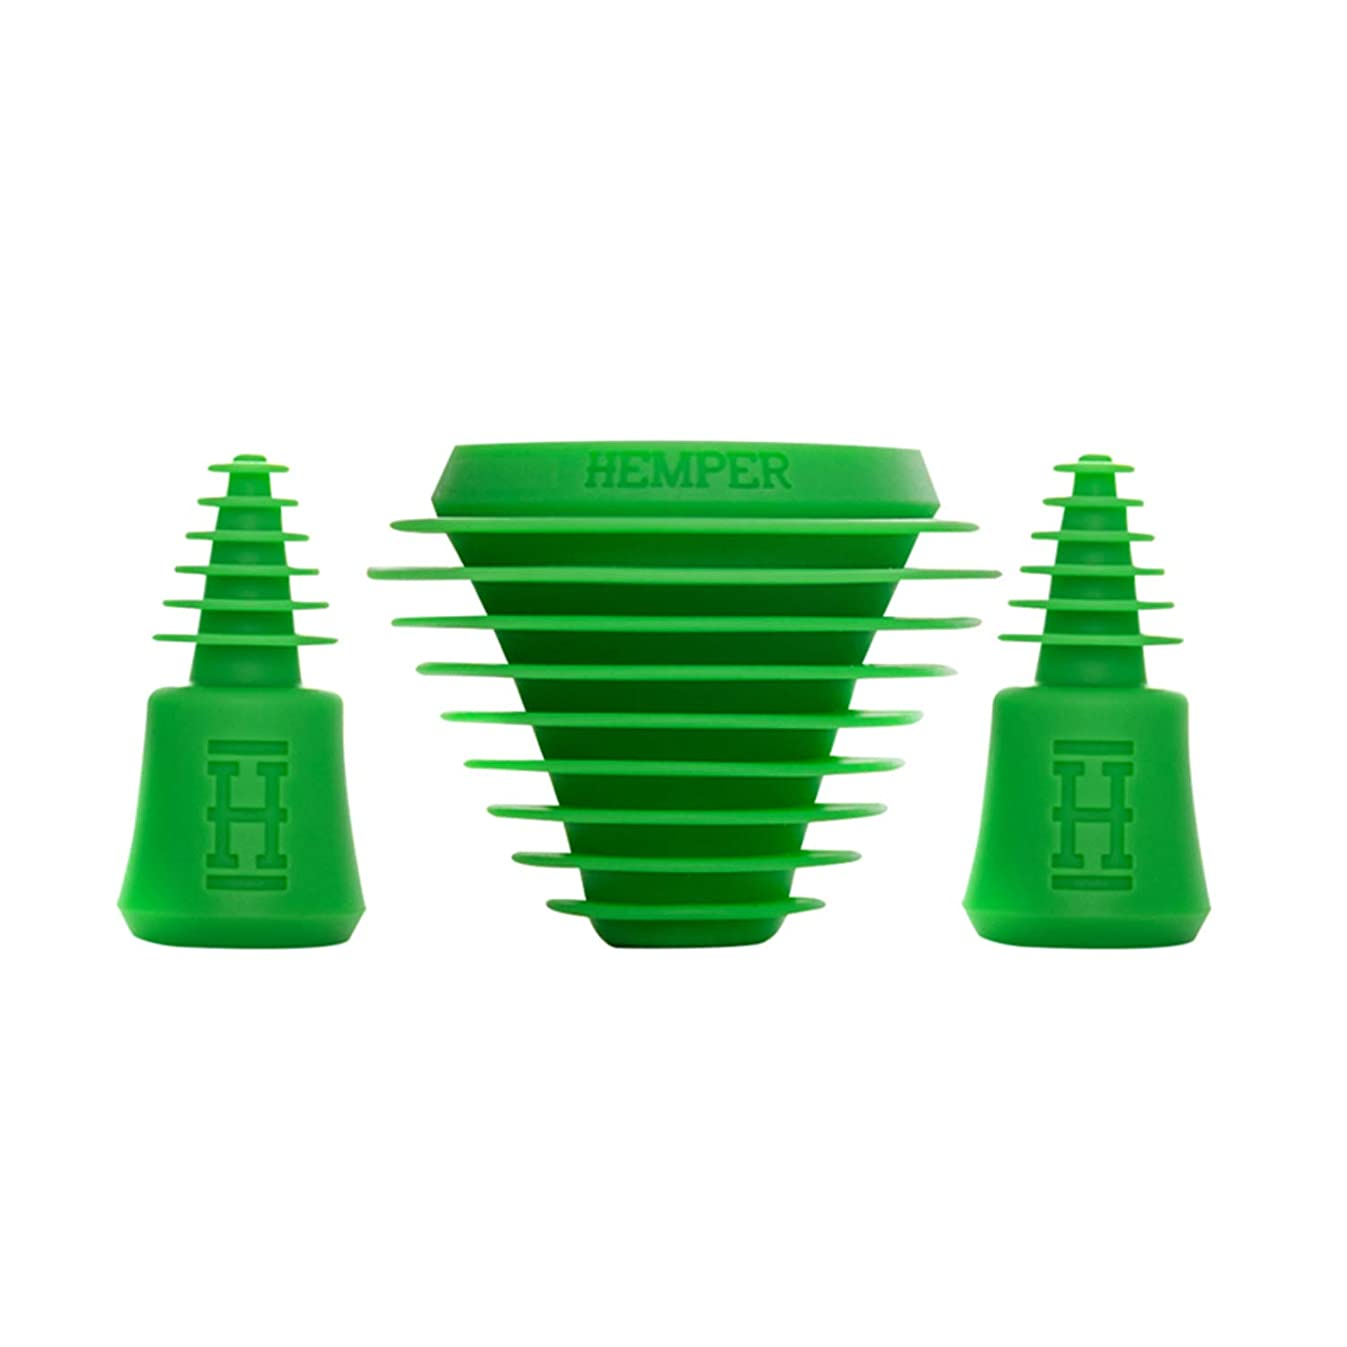 HEMPER Tech Universal Cleaning Plugs+Caps for Cleaning, Storage, and Odor Proofing Glass Water Pipes/Rigs and More